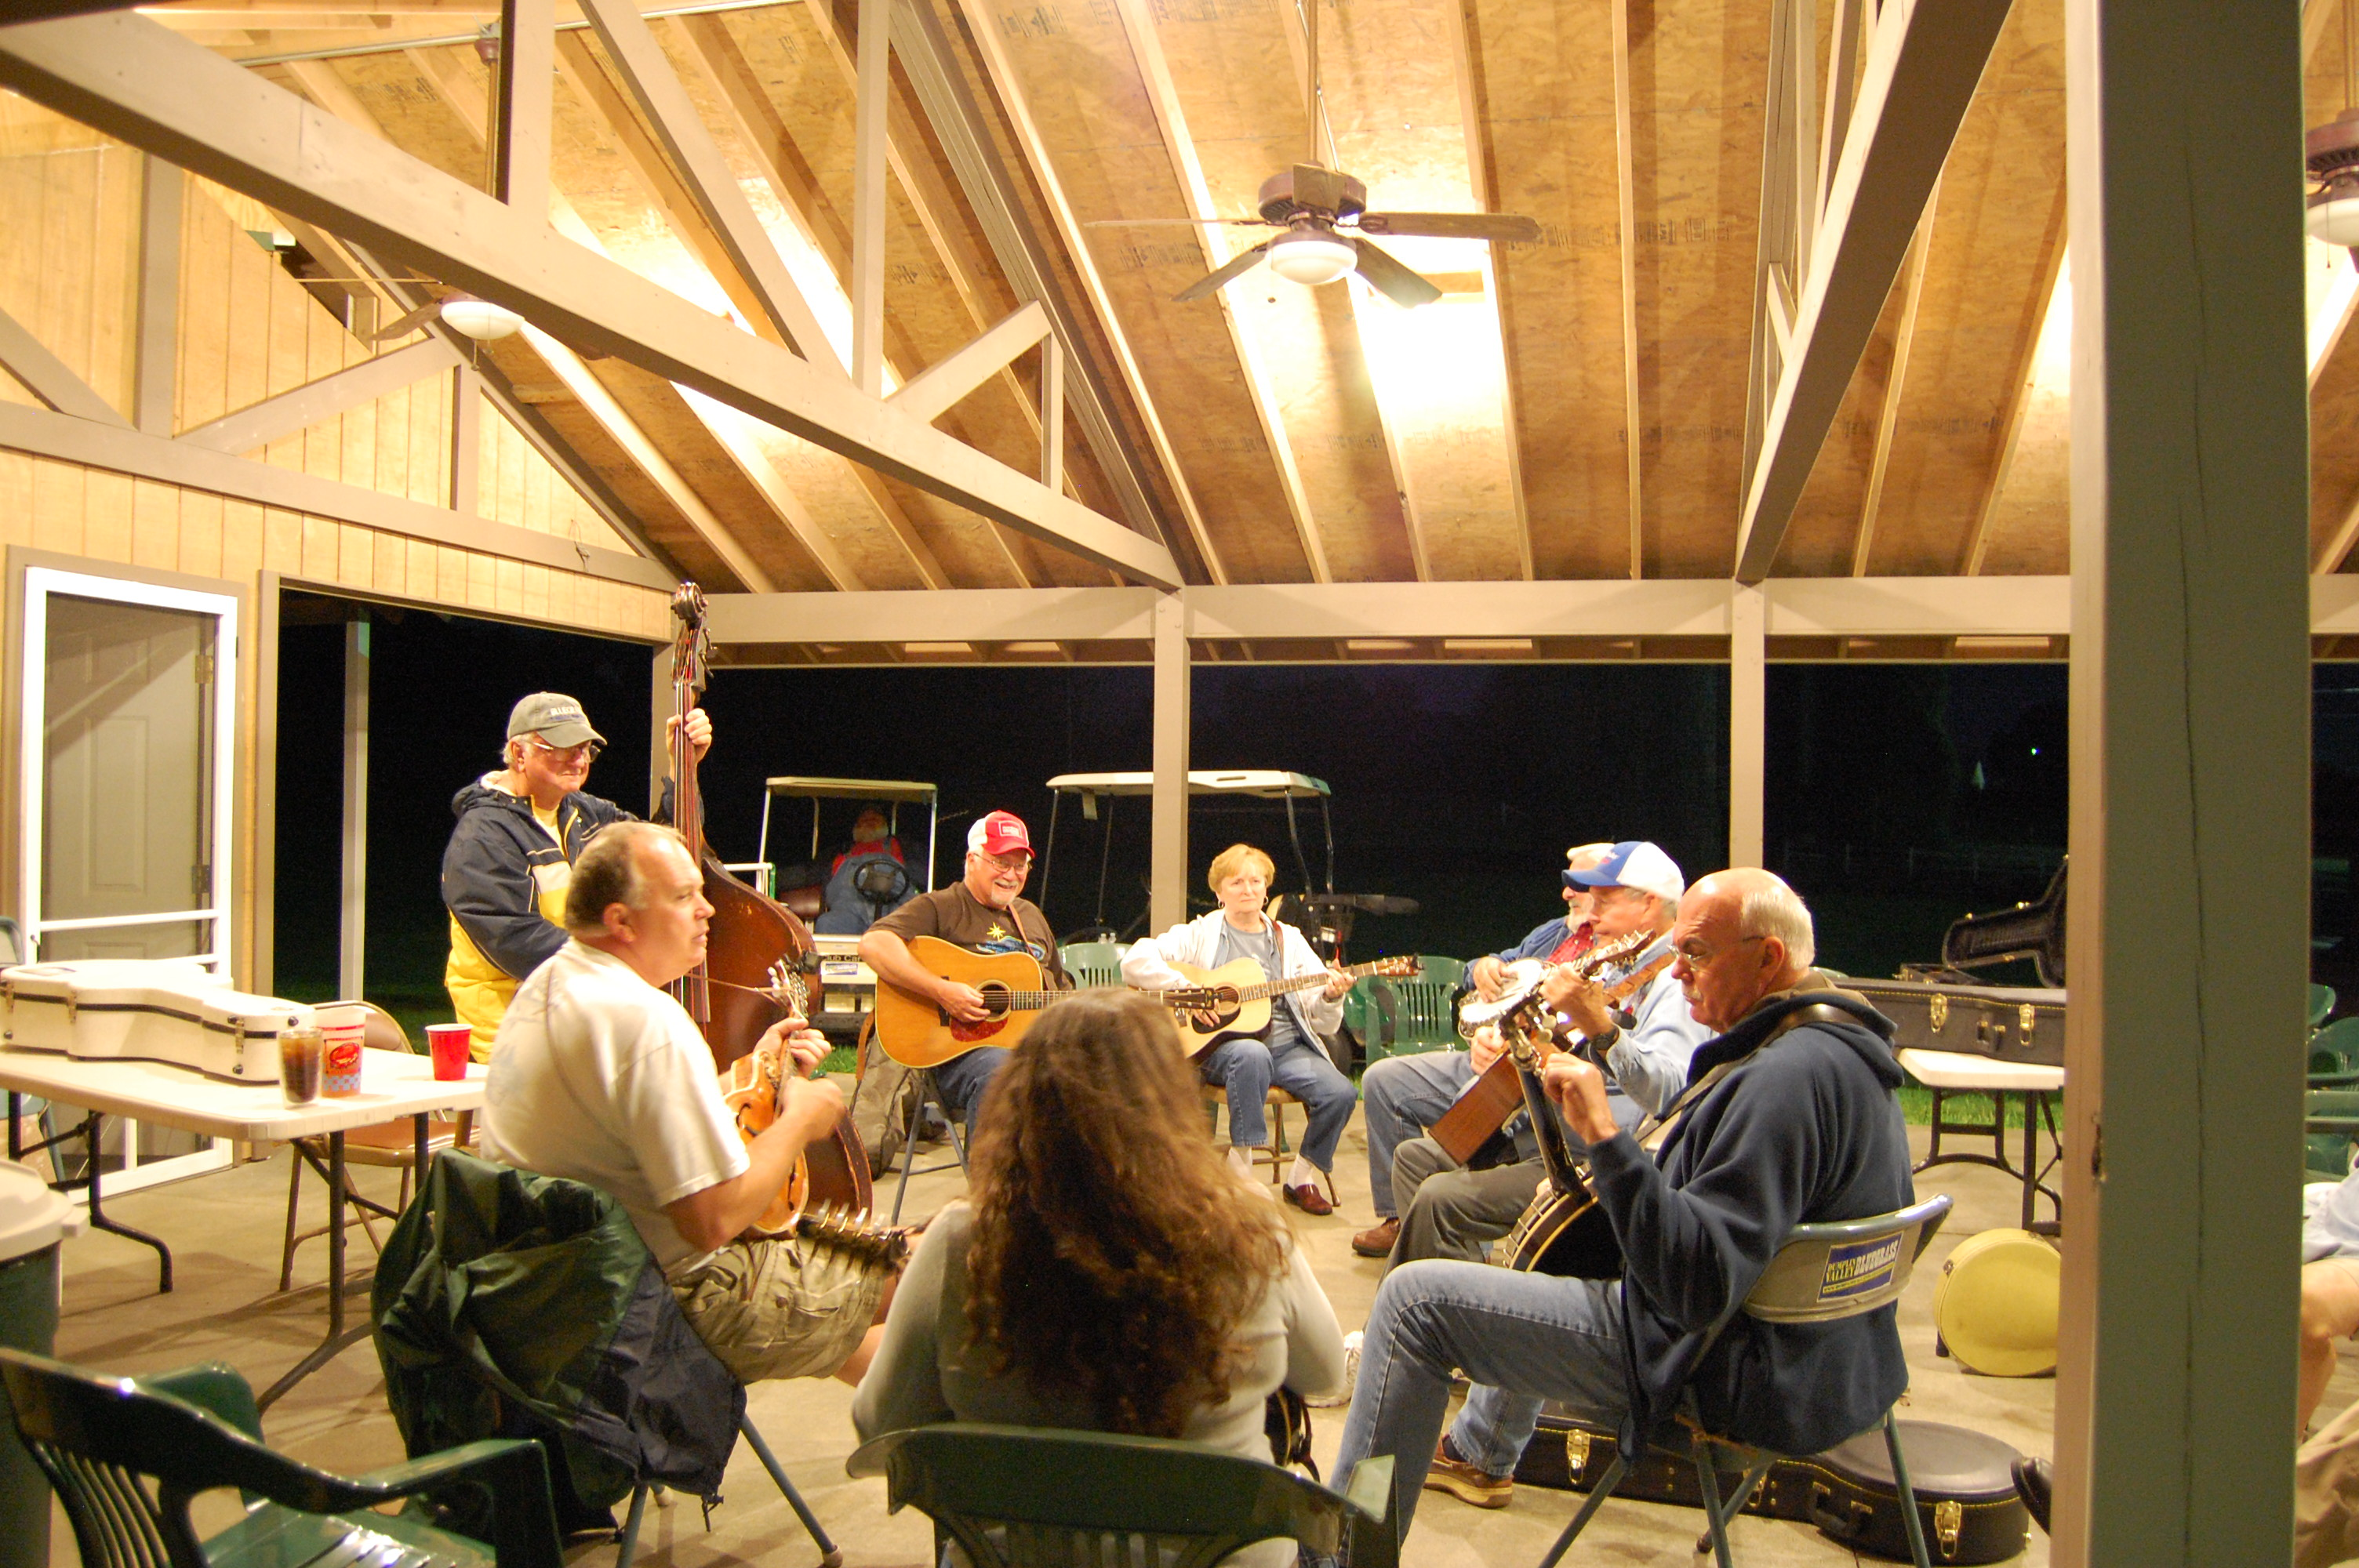 Jamming in the pavilion.